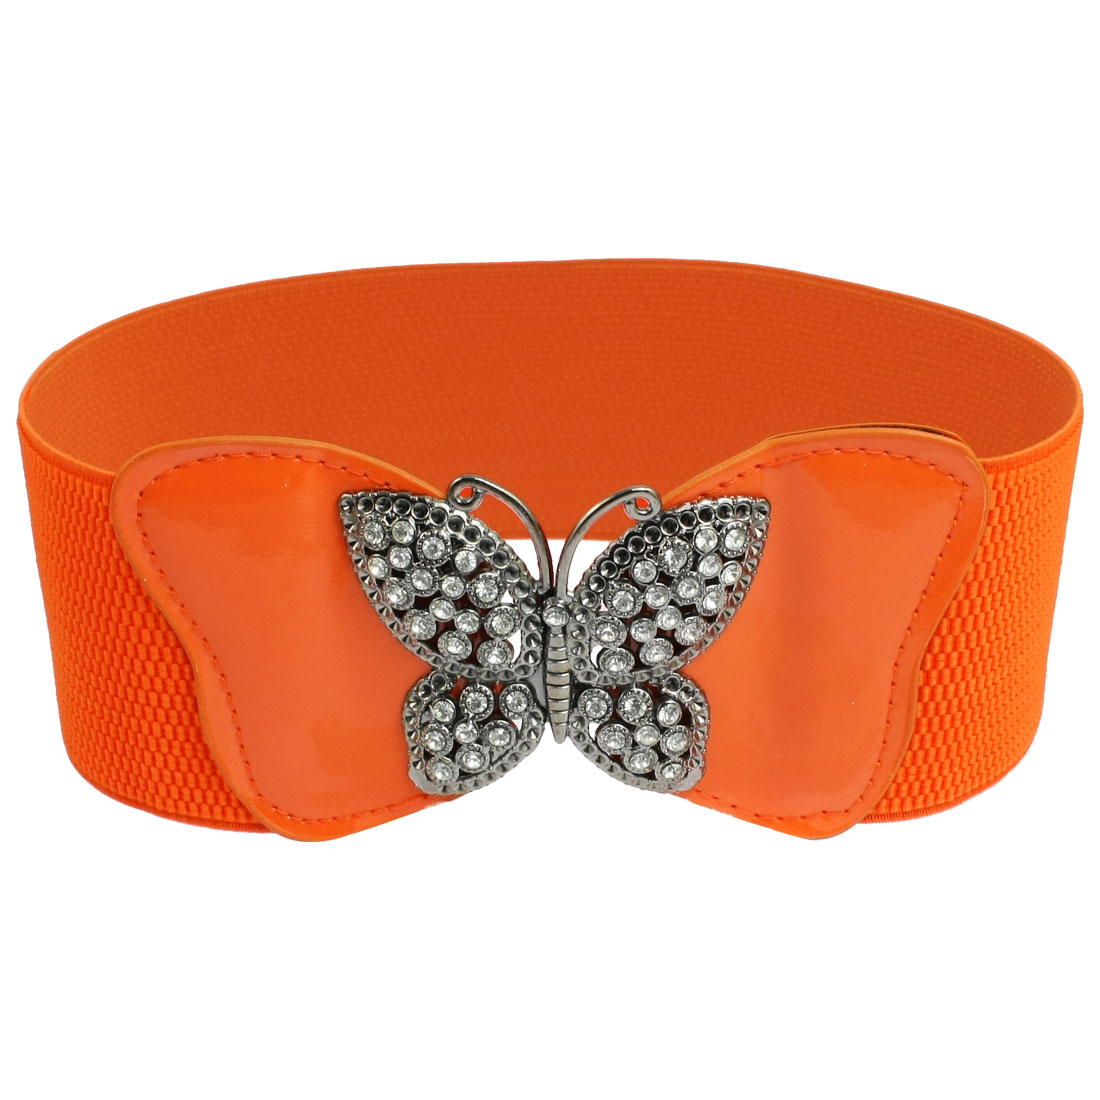 Rhinestone Butterfly Detail Ladies Orange Faux Leather Elastic Waist Belt